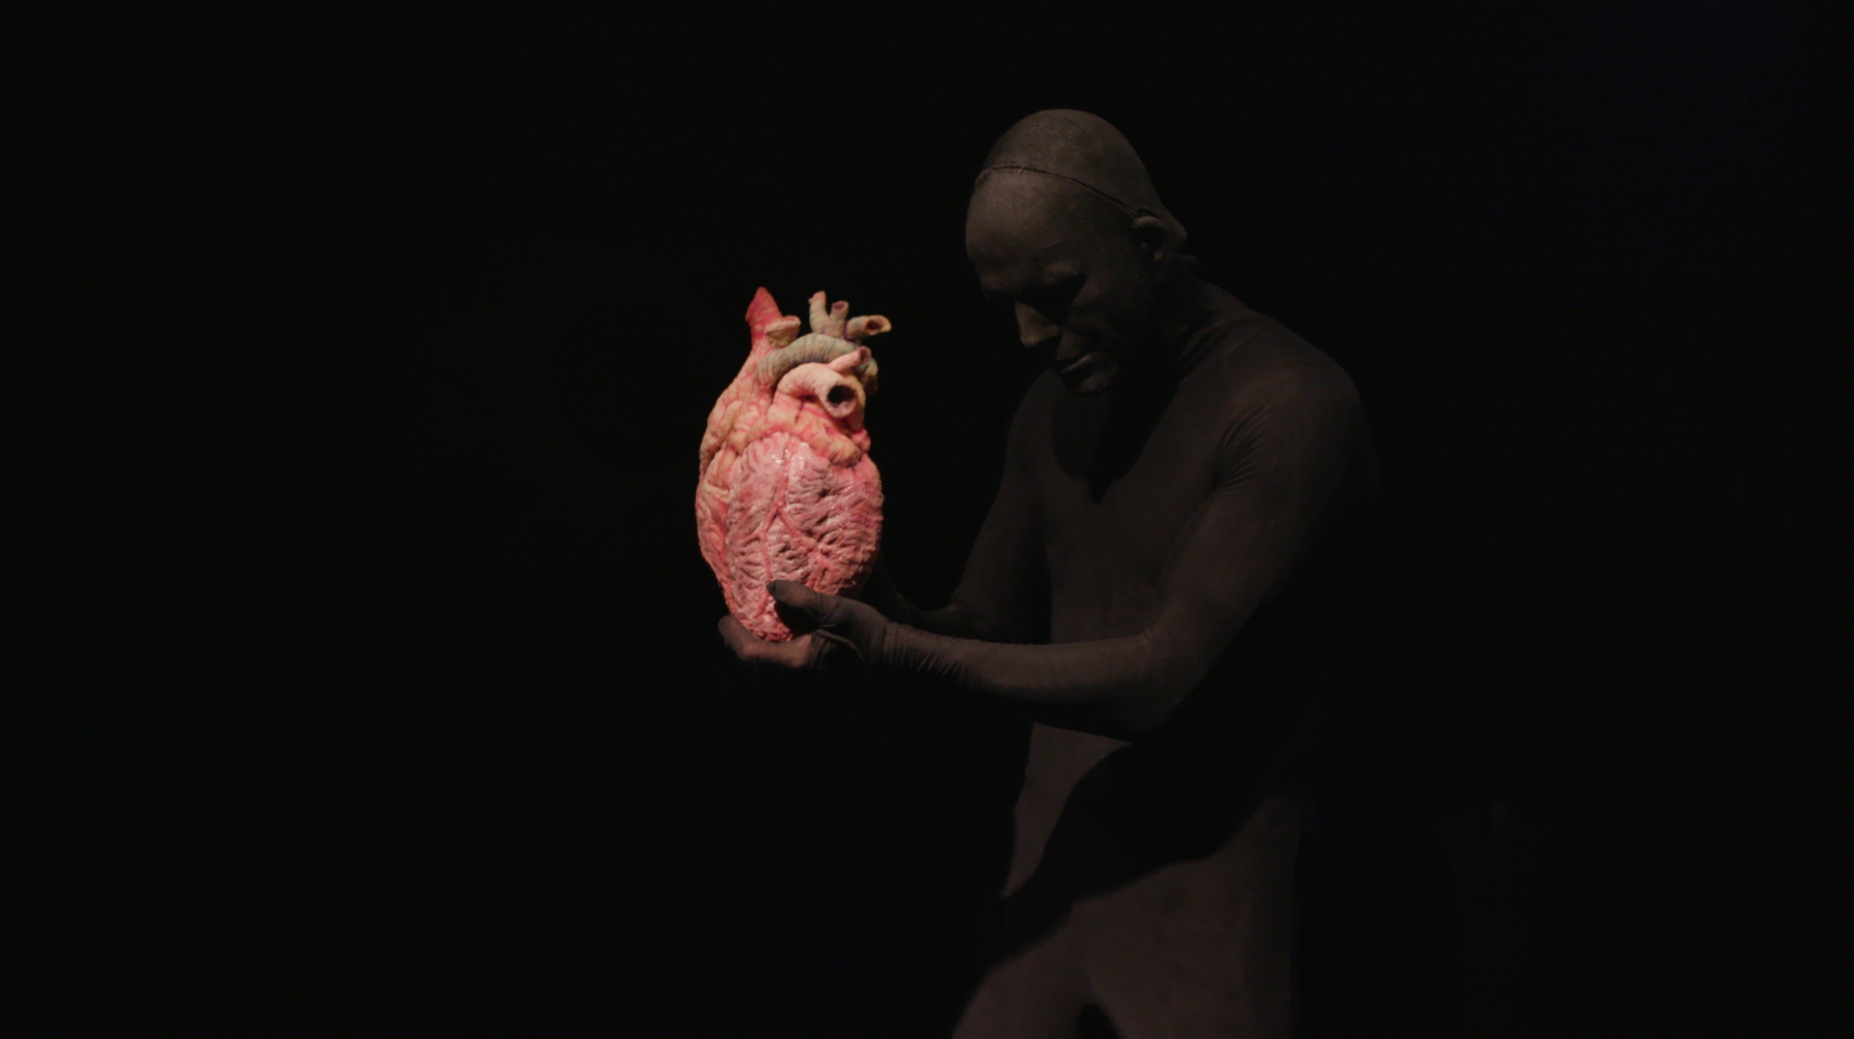 a puppeteer dressed in black holds a realistic heart puppet in his hands